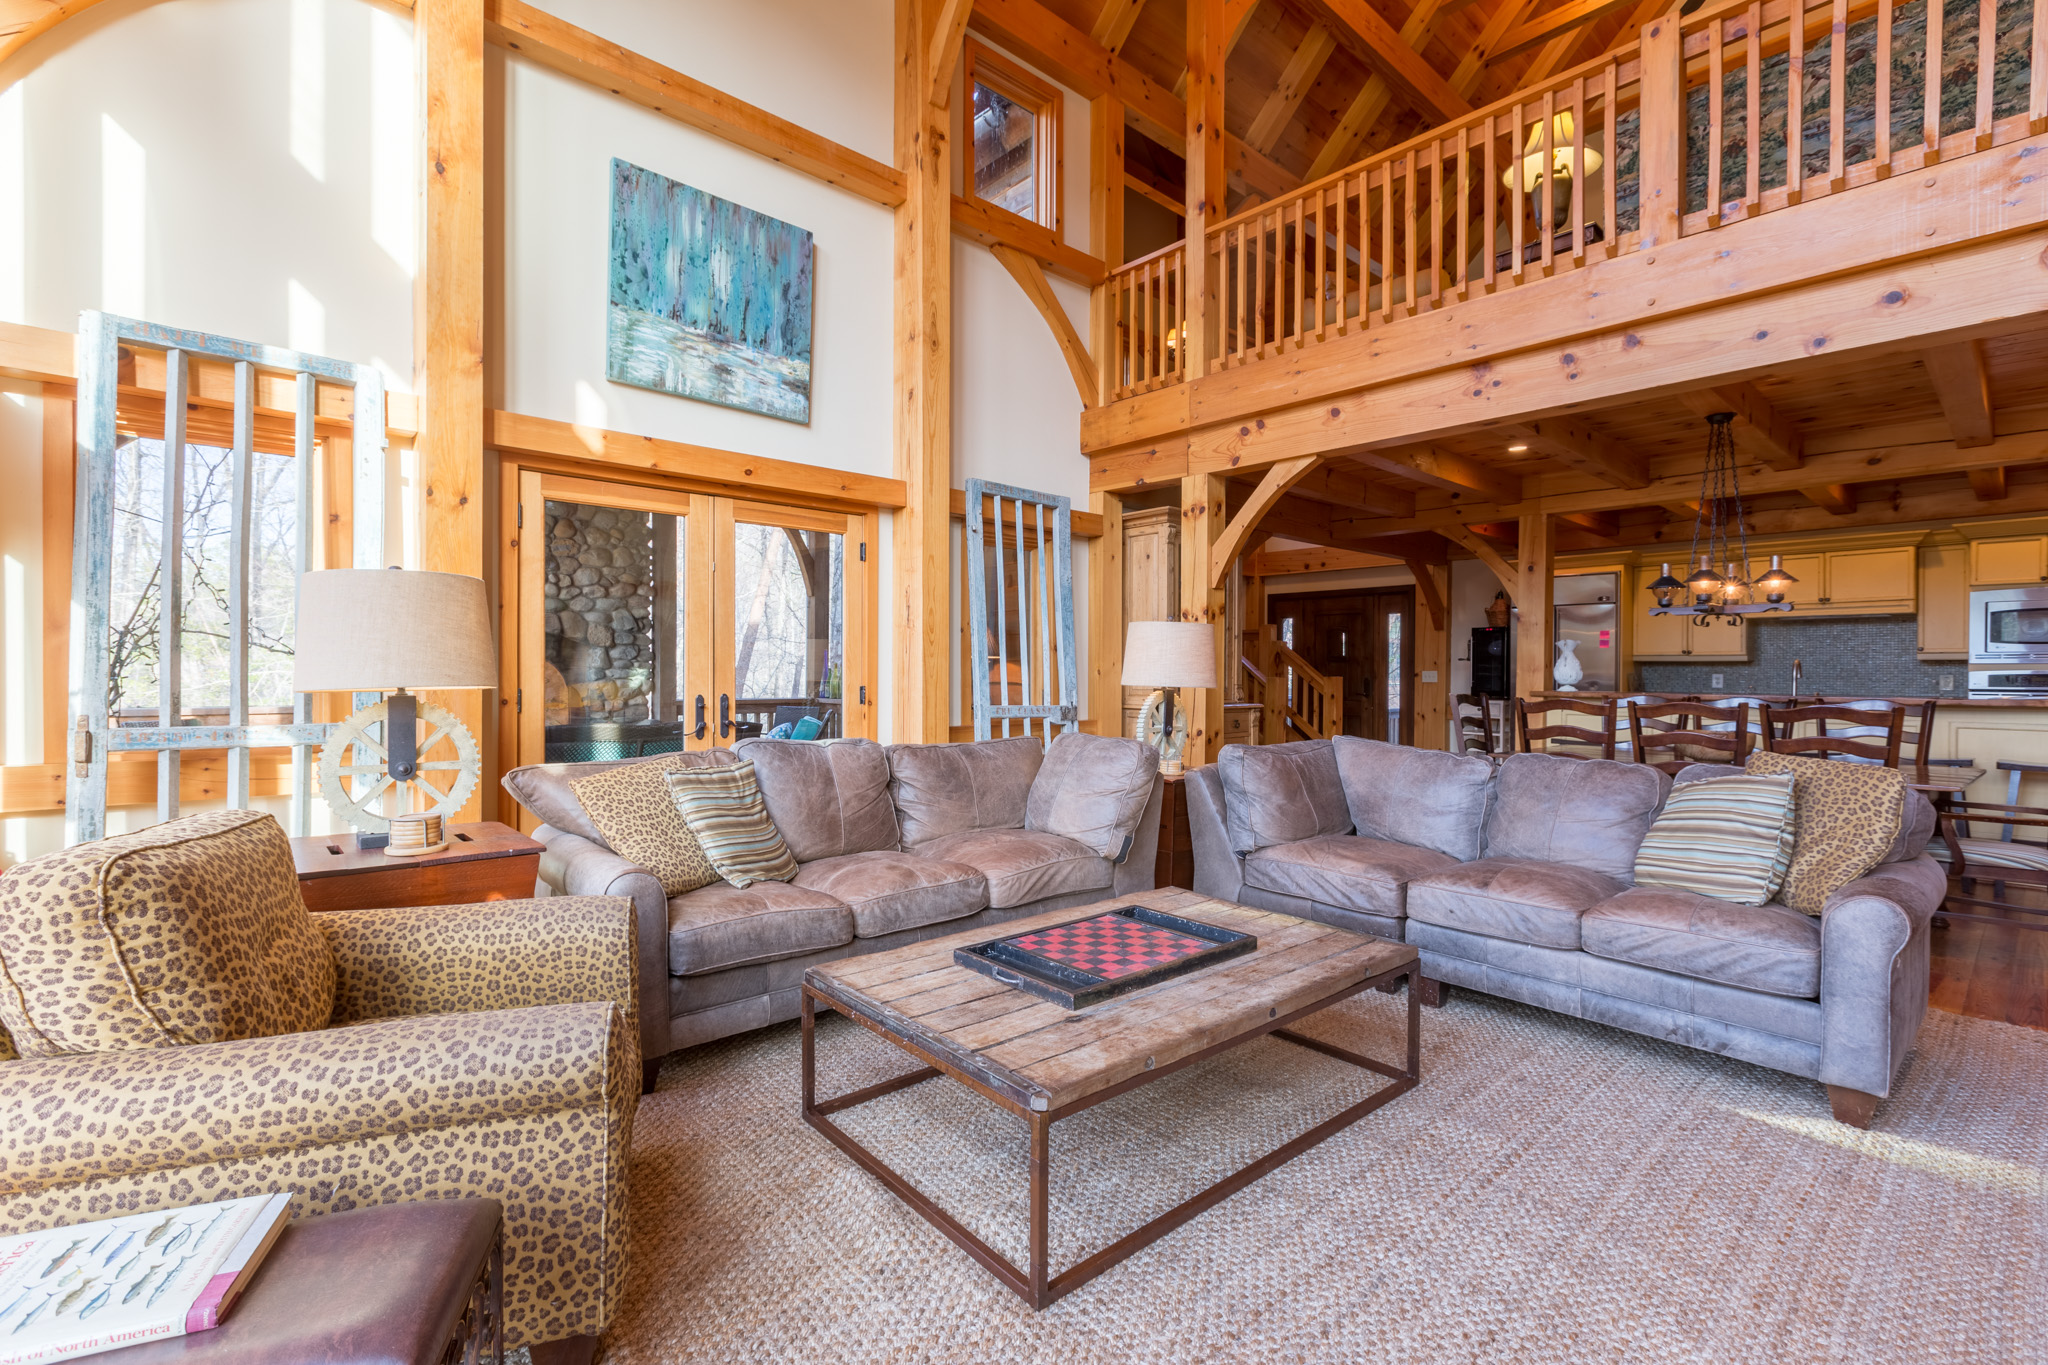 Interior real estate pictures of 48 Cottage Grove on Lake James